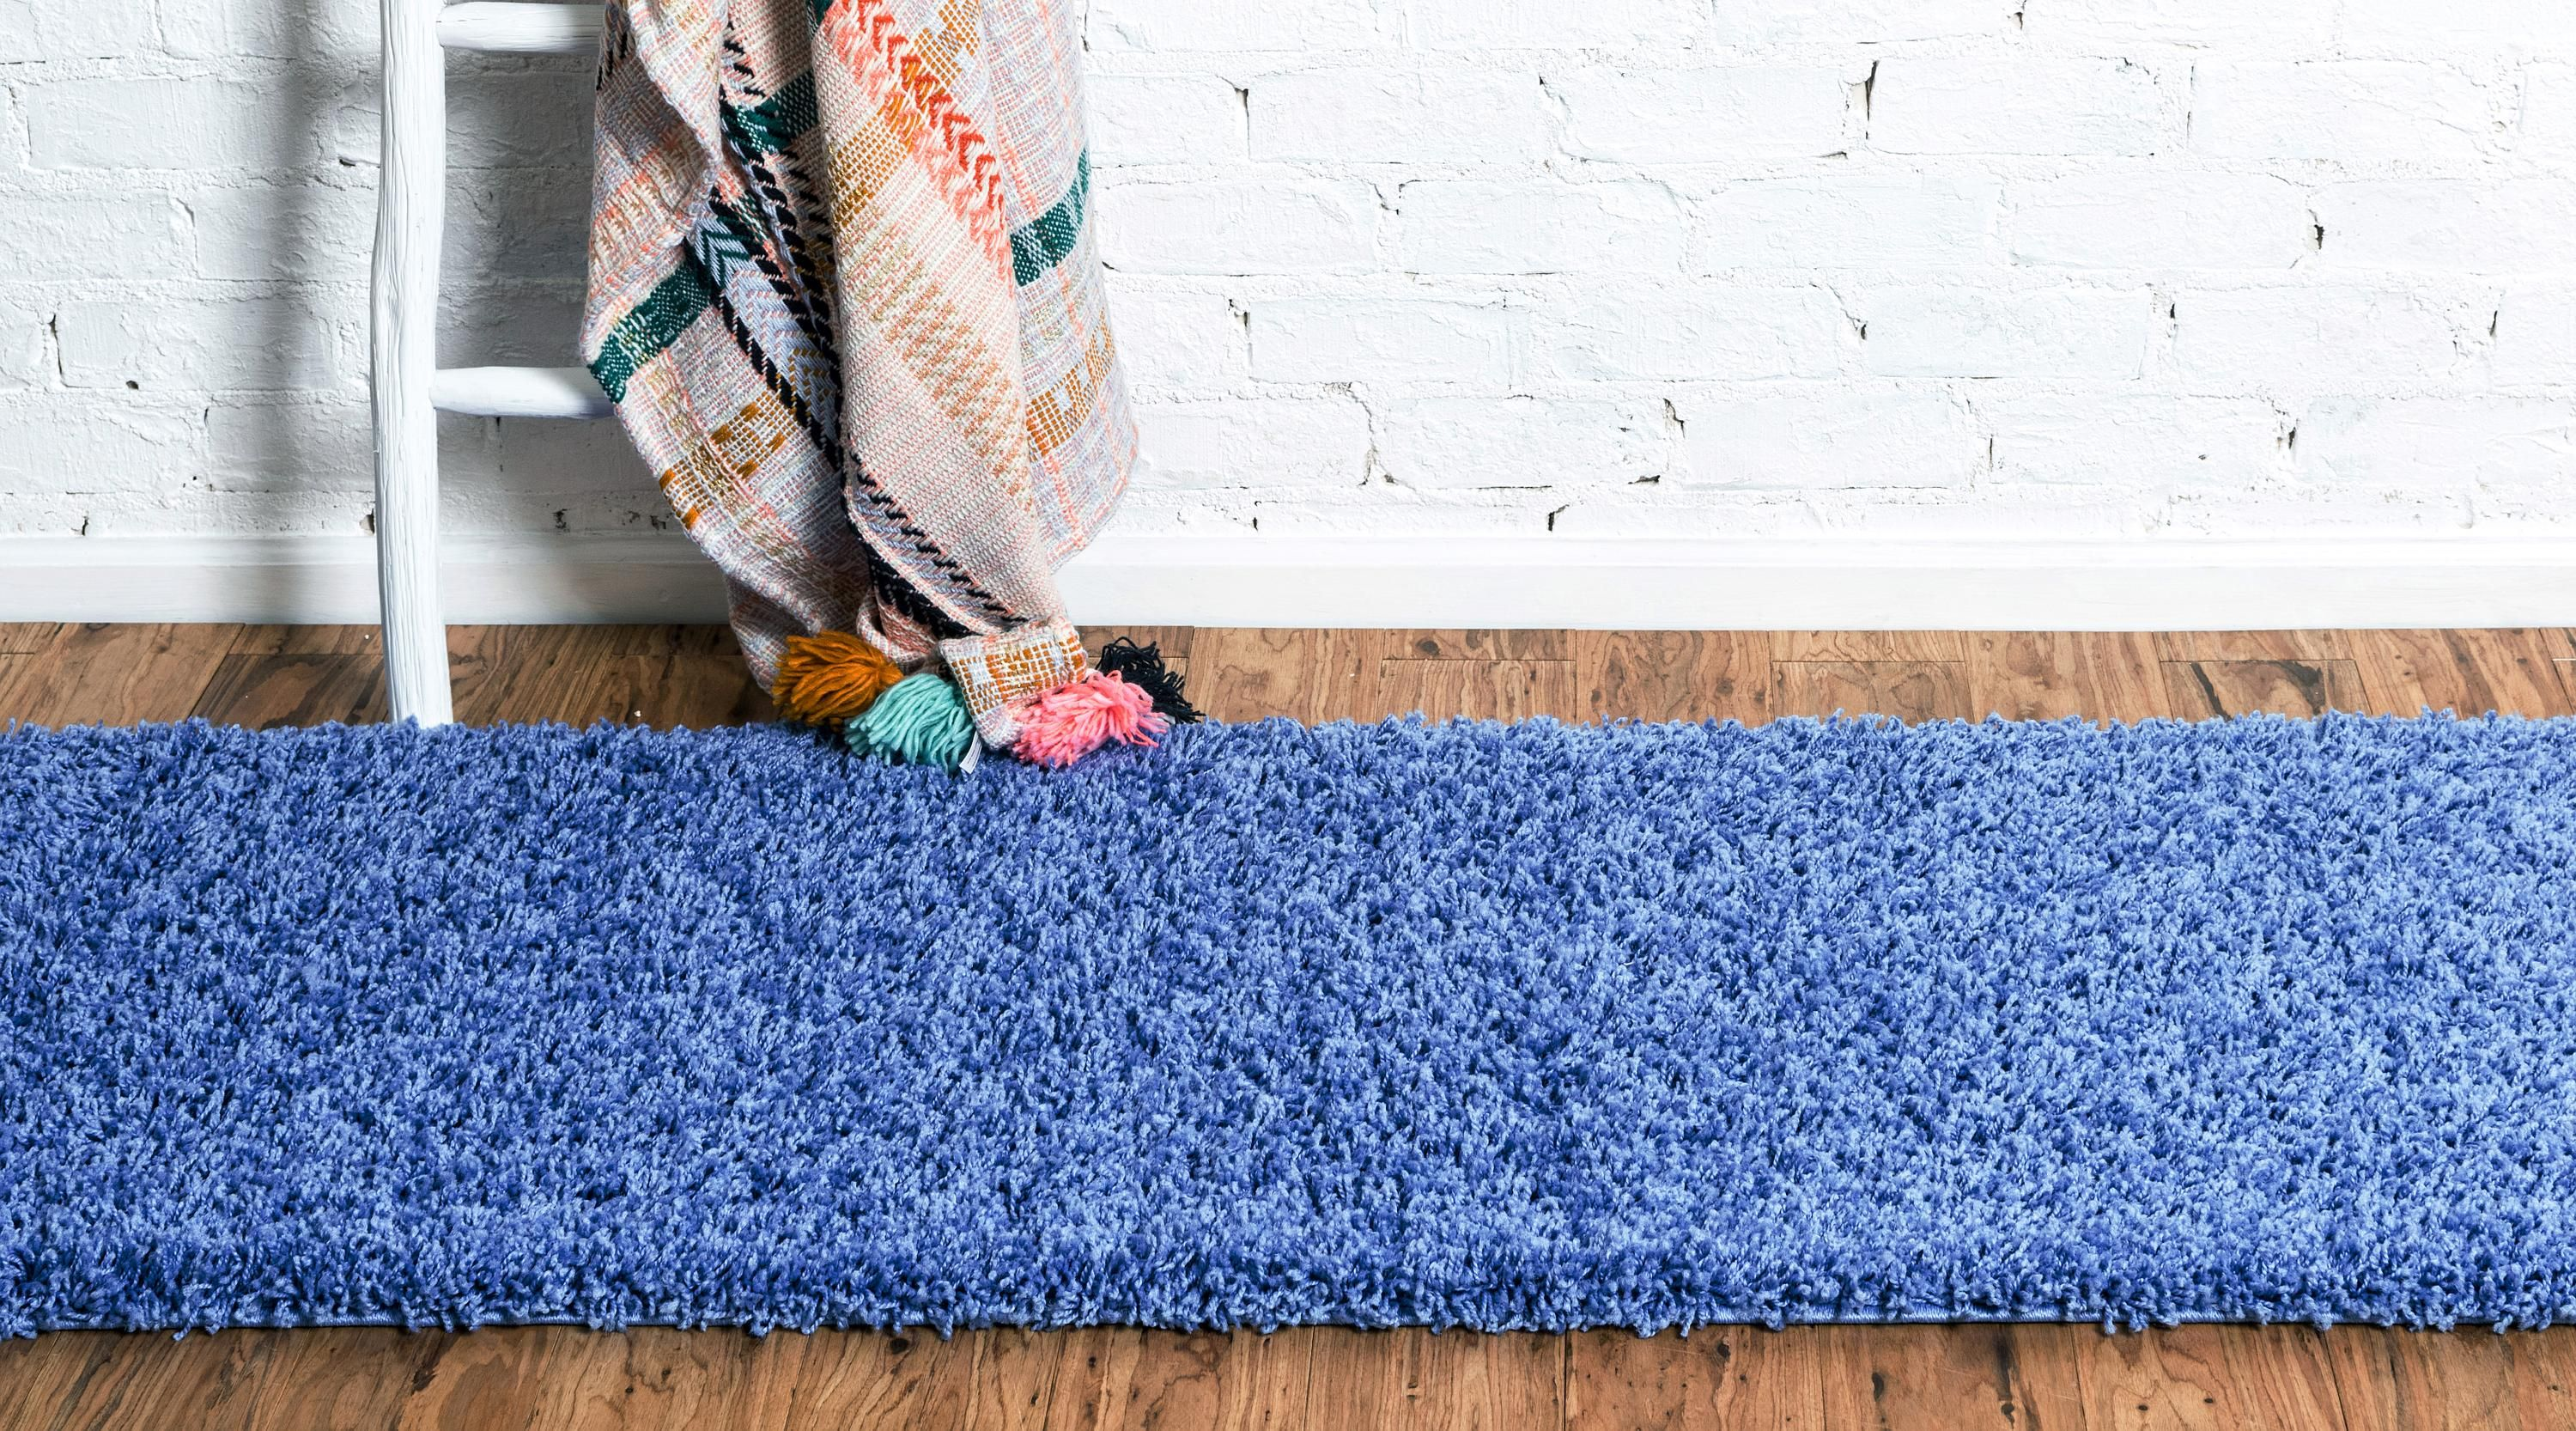 Periwinkle Blue 2 6 X 16 5 Solid Shag Runner Rug Affiliate Blue Periwinkle Solid Rug Runner Sponsored With Images Rug Runner Rugs Shed Colours